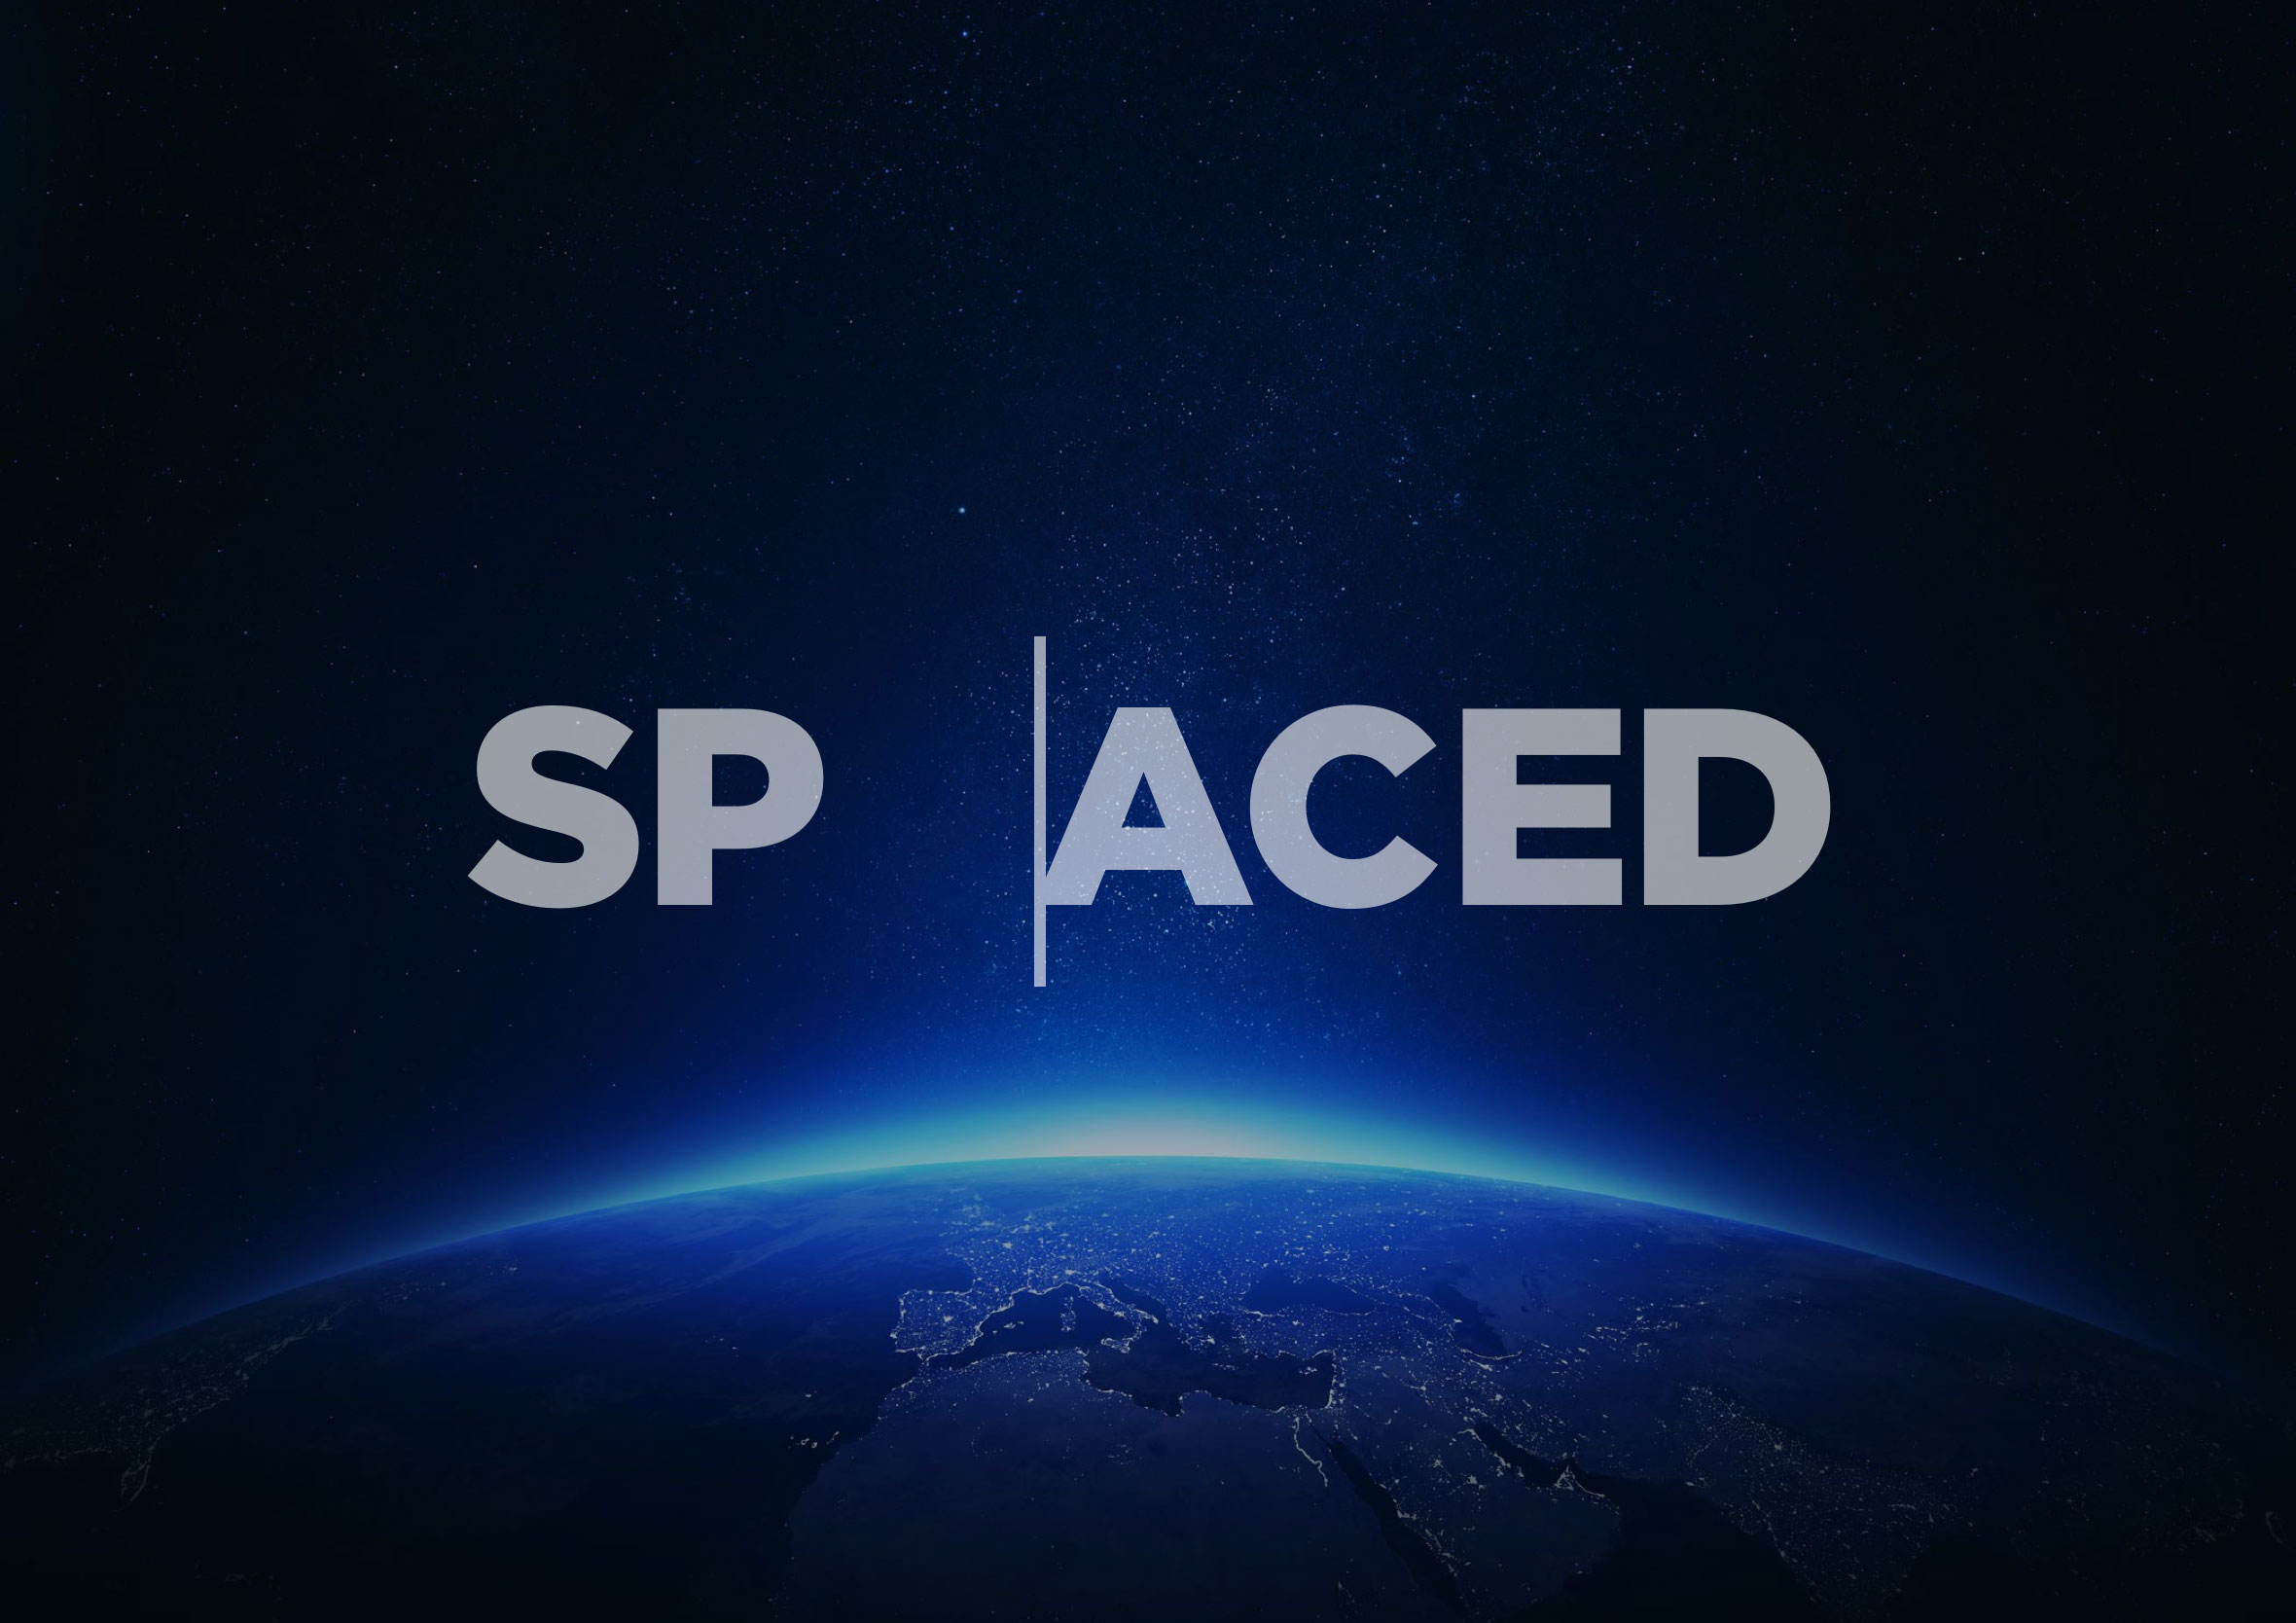 spaced-logo-with-background